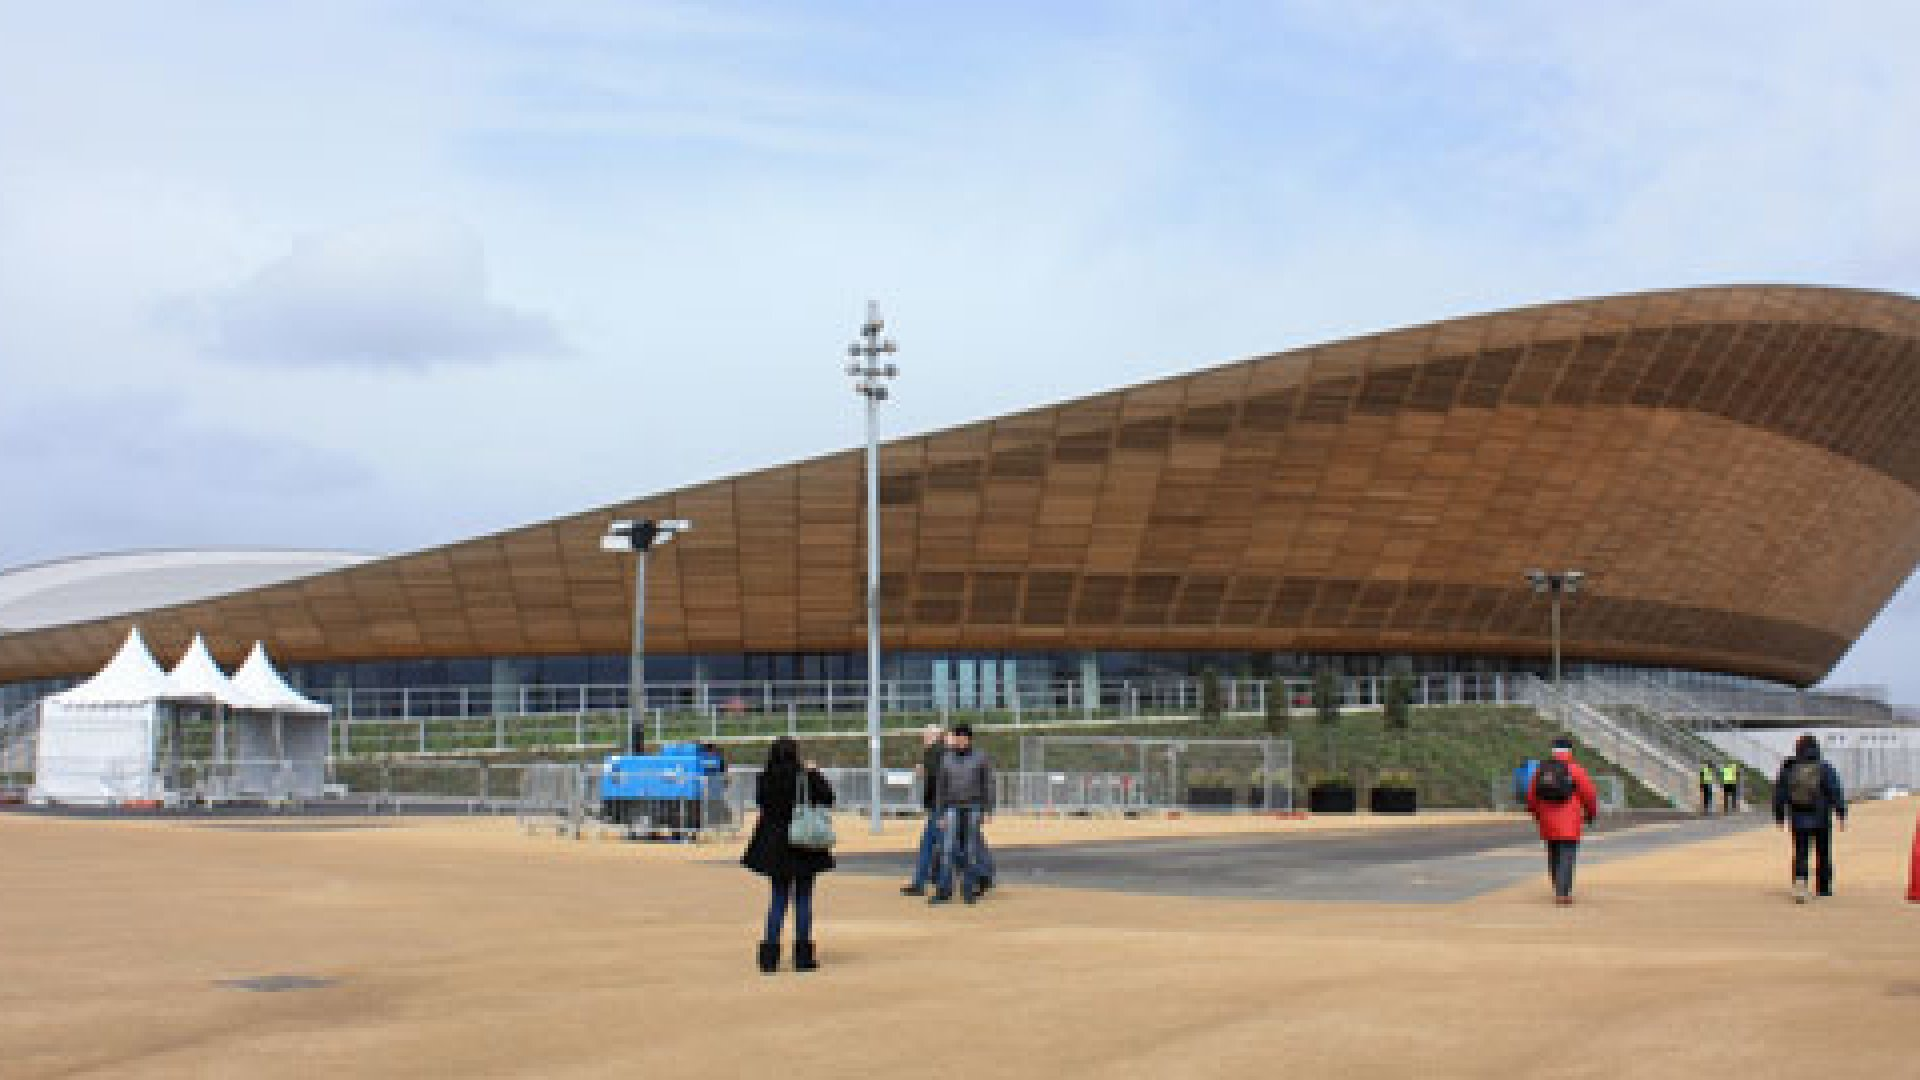 London's Olympic Velodrome for the 2012 London Olympic Games, in Stratford East London.